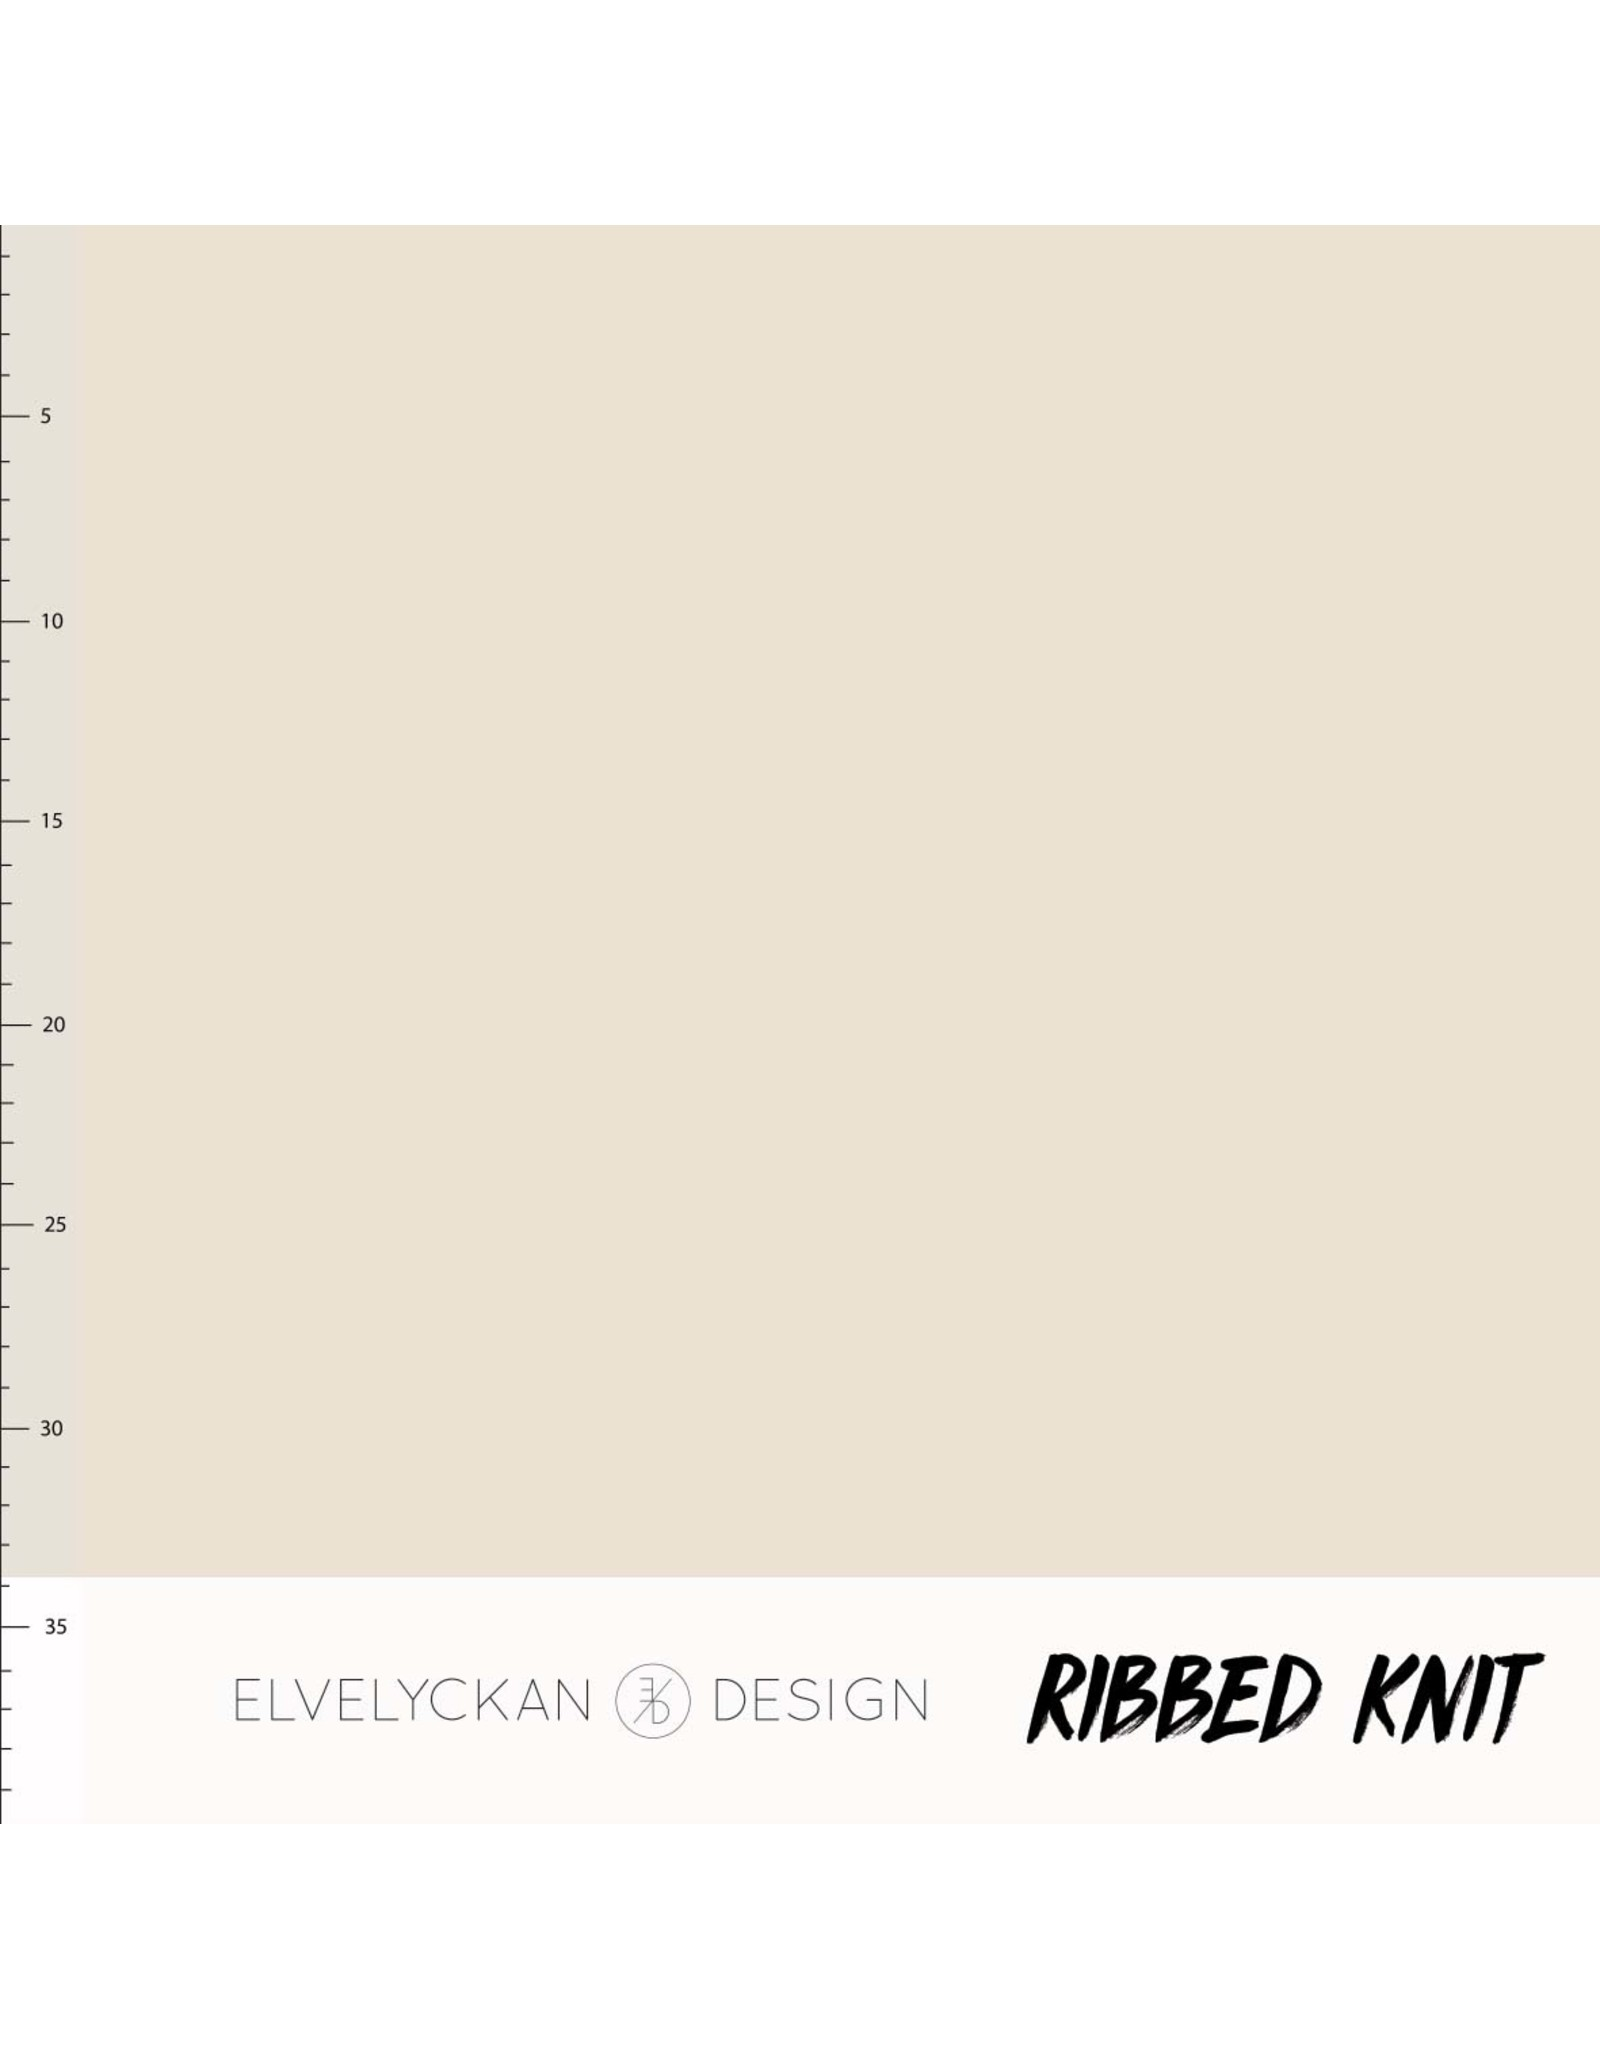 Elvelyckan Ribbed knit creme